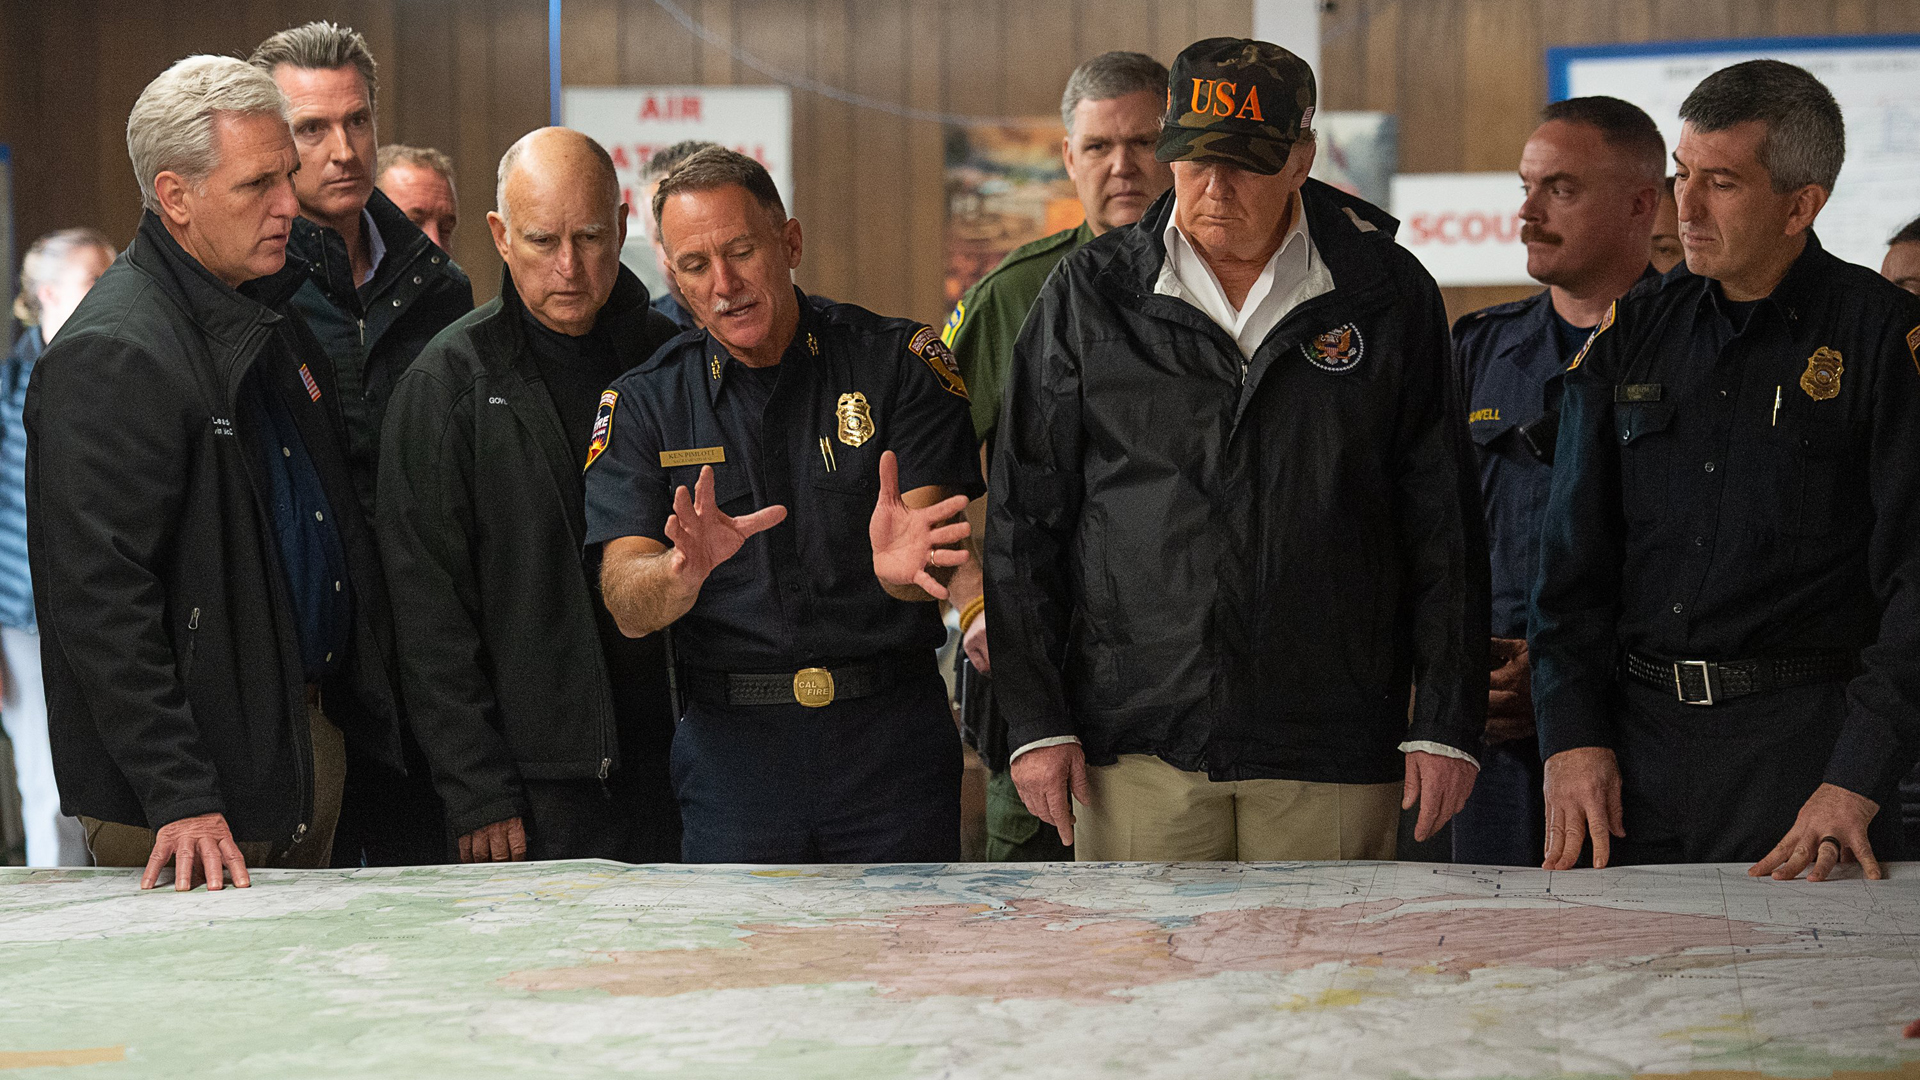 Congressman Kevin McCarthy, Gov. Jerry Brown, Gov.-elect Gavin Newson and President Donald Trump listen to Cal Fire Chief Ken Pimlott during his visit of the Camp Fire in Chico, California on November 17, 2018. (Credit: Paul Kitagaki Jr.-Pool/Getty Images)